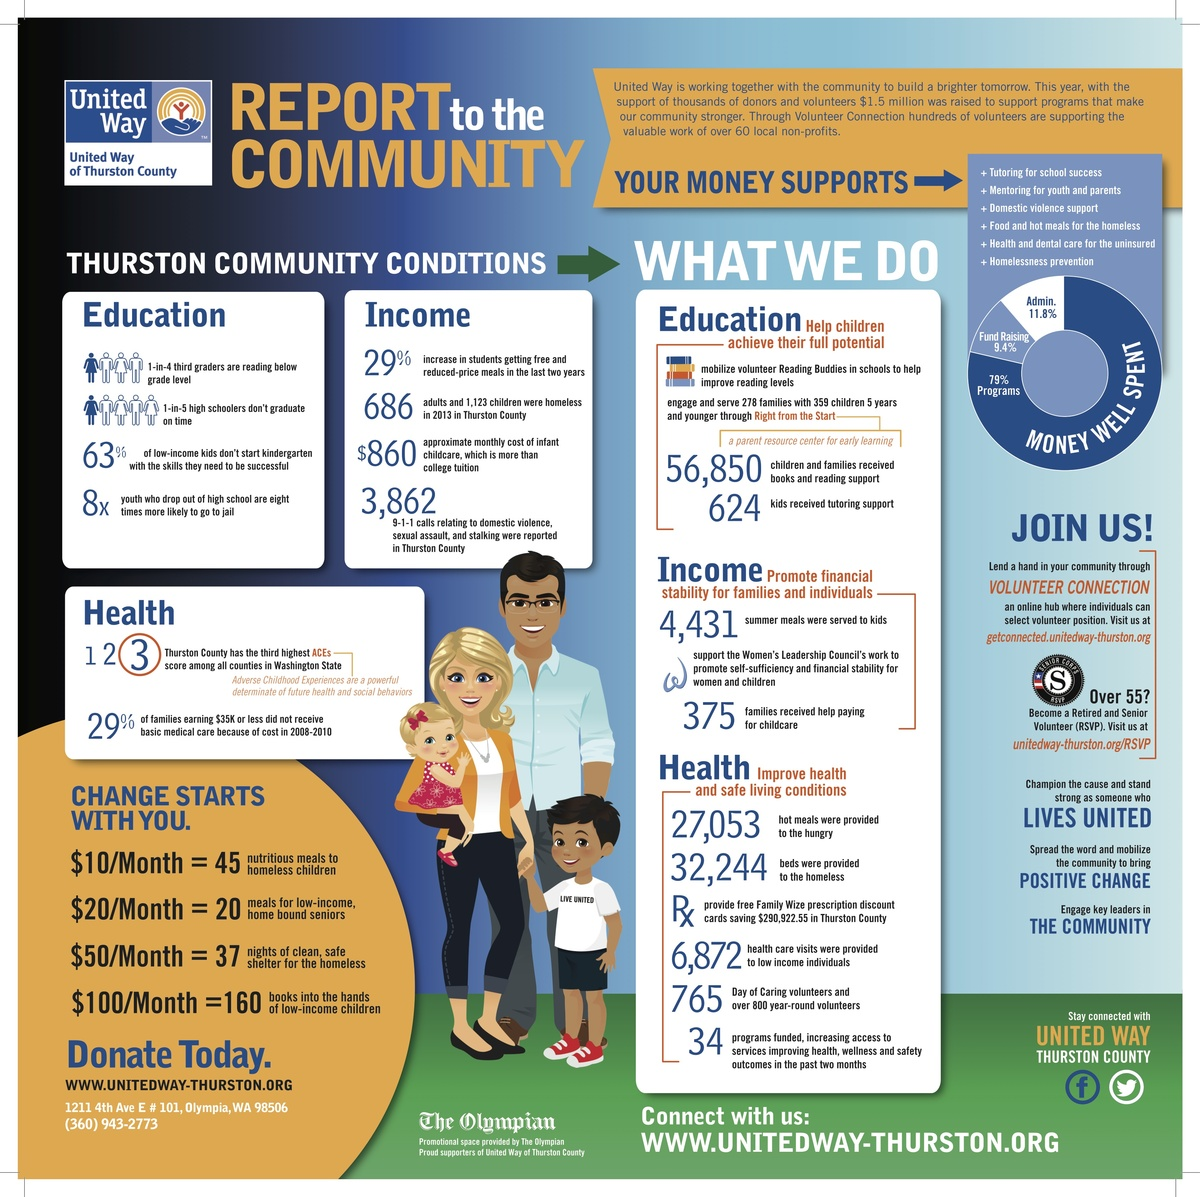 Campaign Toolkit   United Way of Thurston County